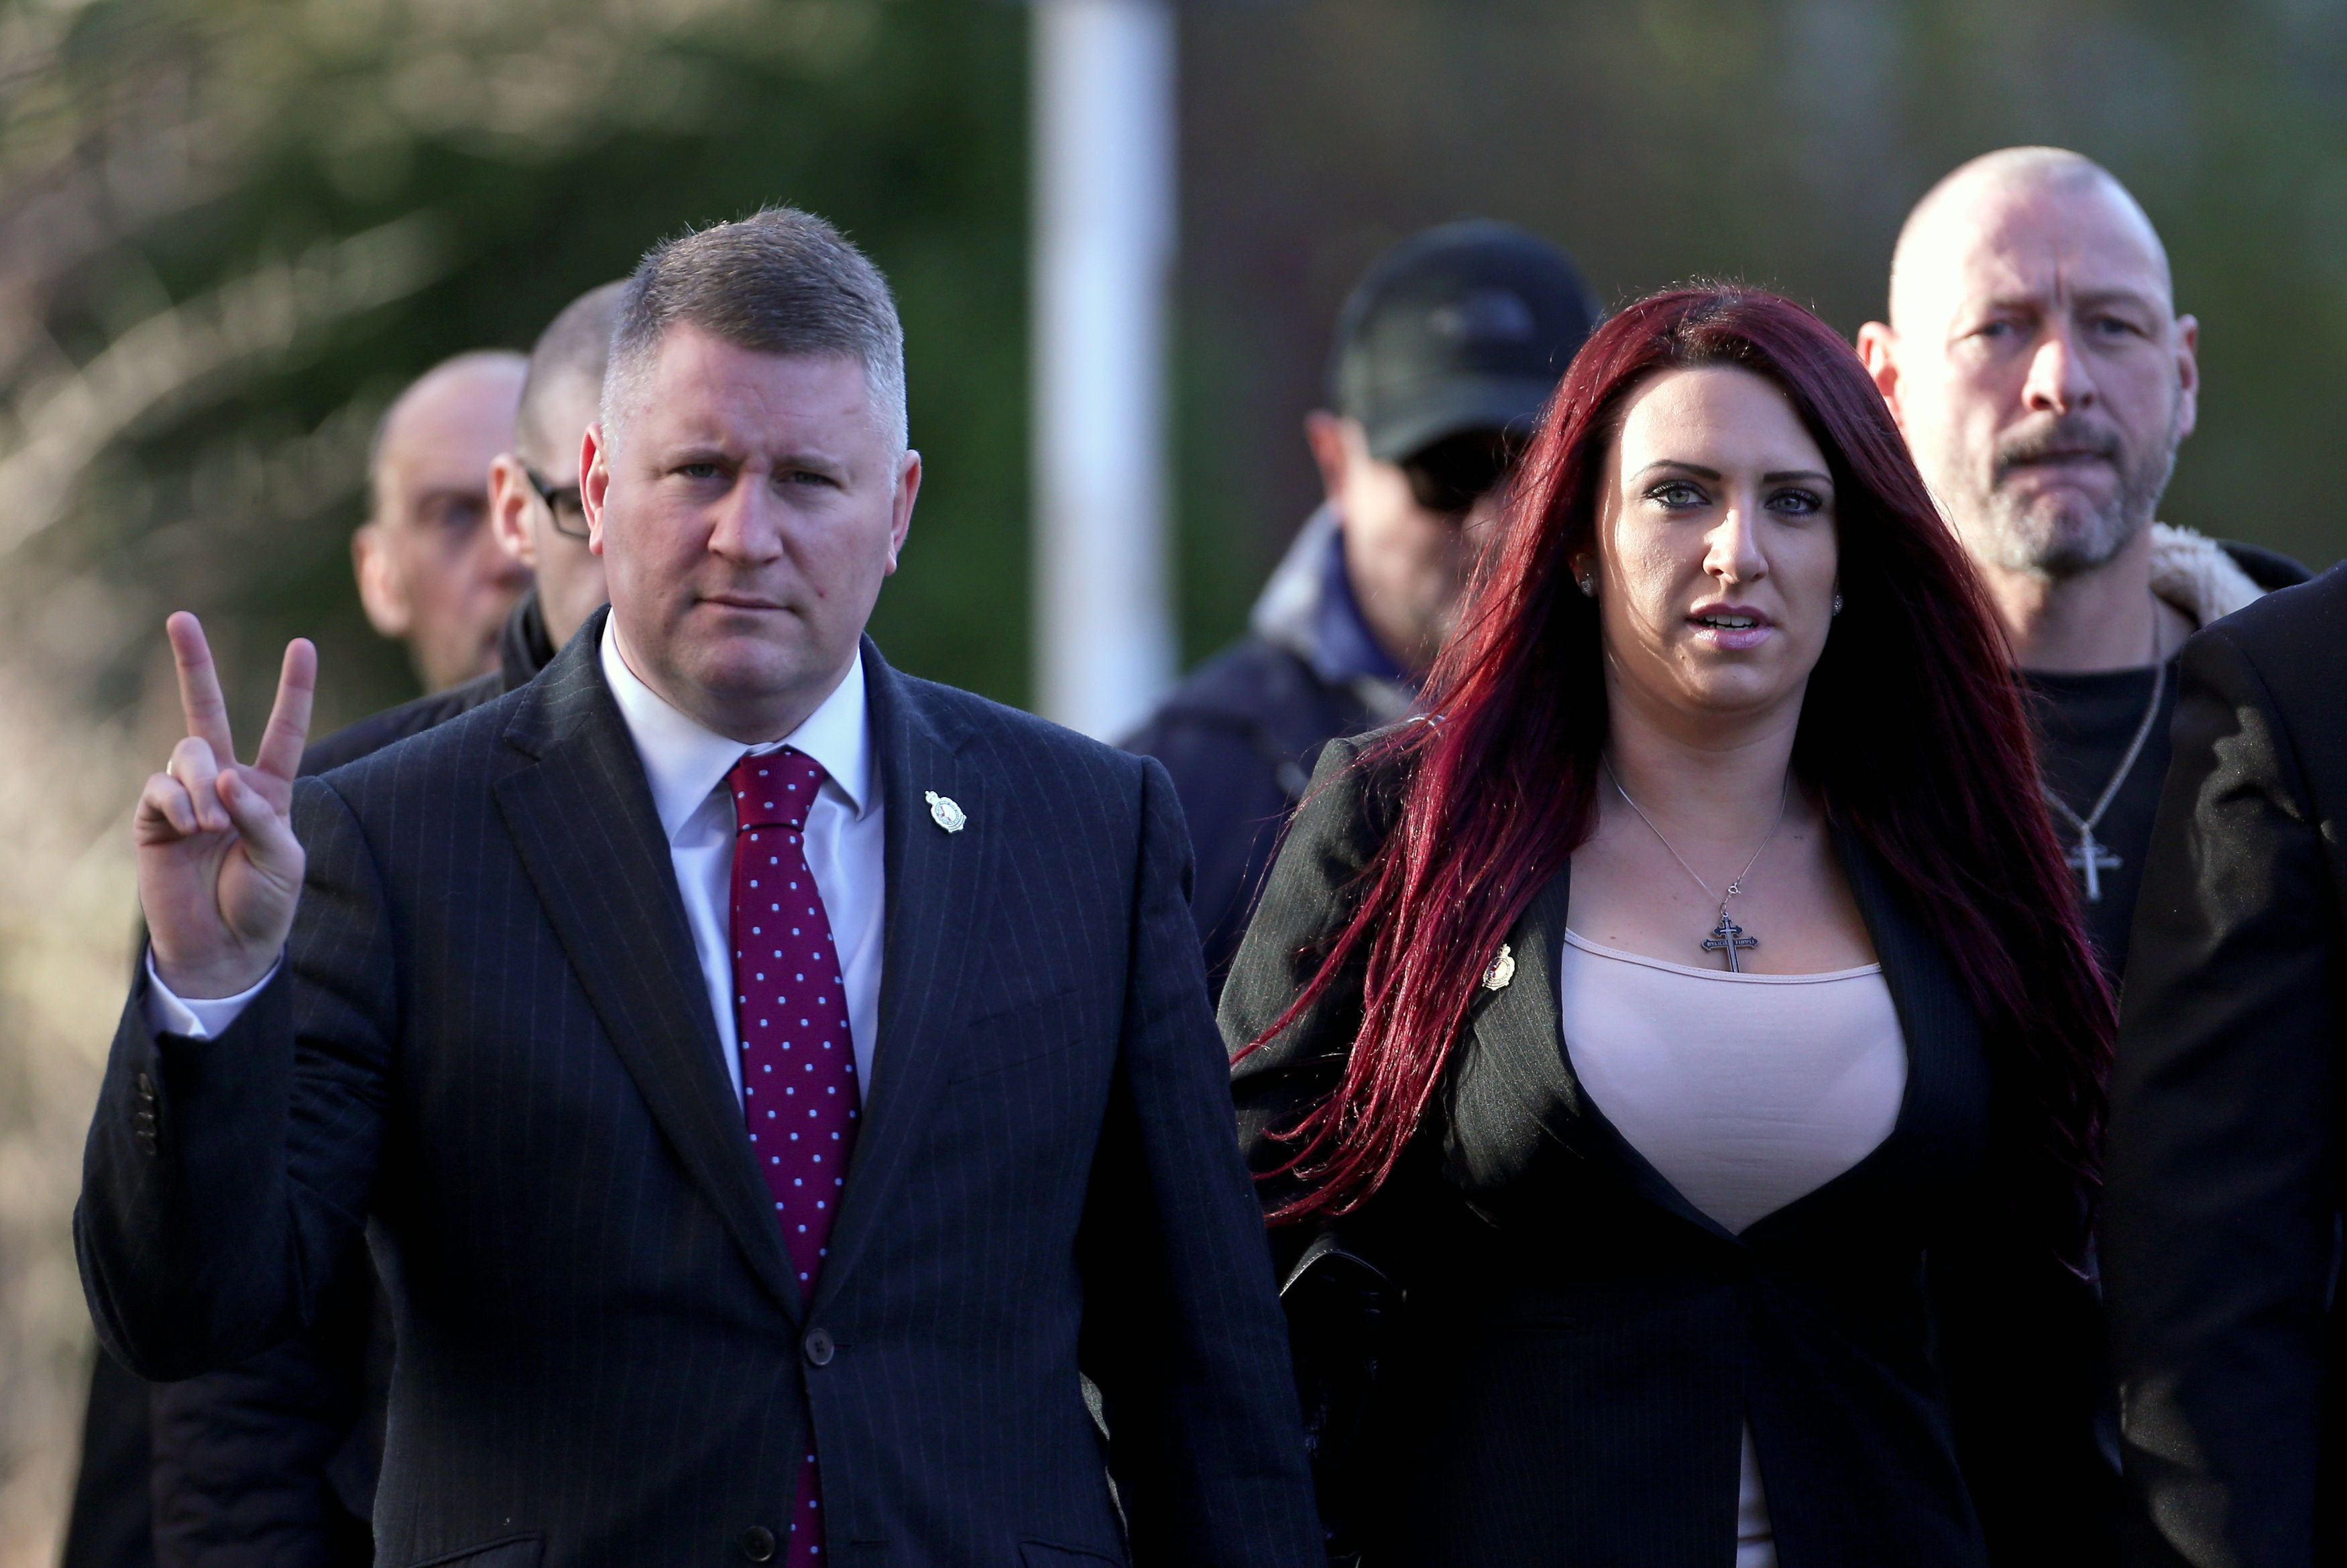 Britain First leaders found guilty of hate crimes